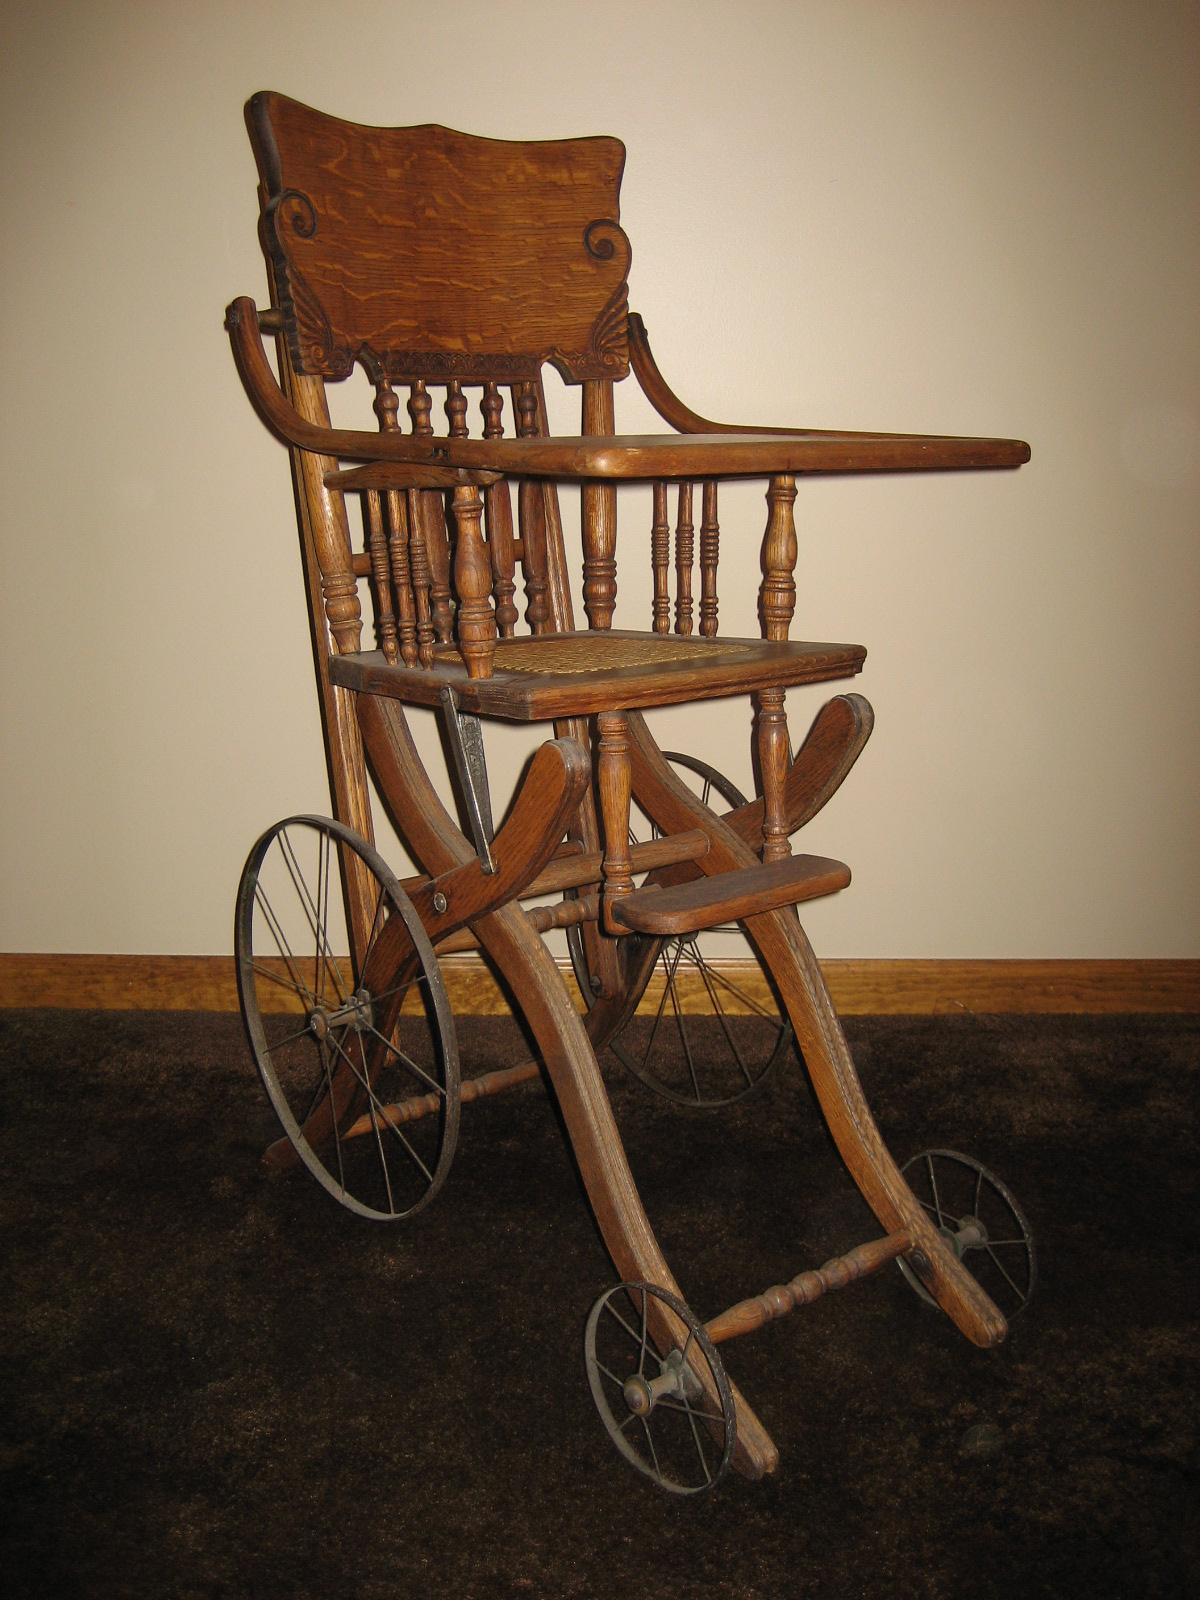 1890's OAK HIGHCHAIR/STROLLER - 1890's OAK HIGHCHAIR/STROLLER MikeHaganAntiqueAutoRadio.com